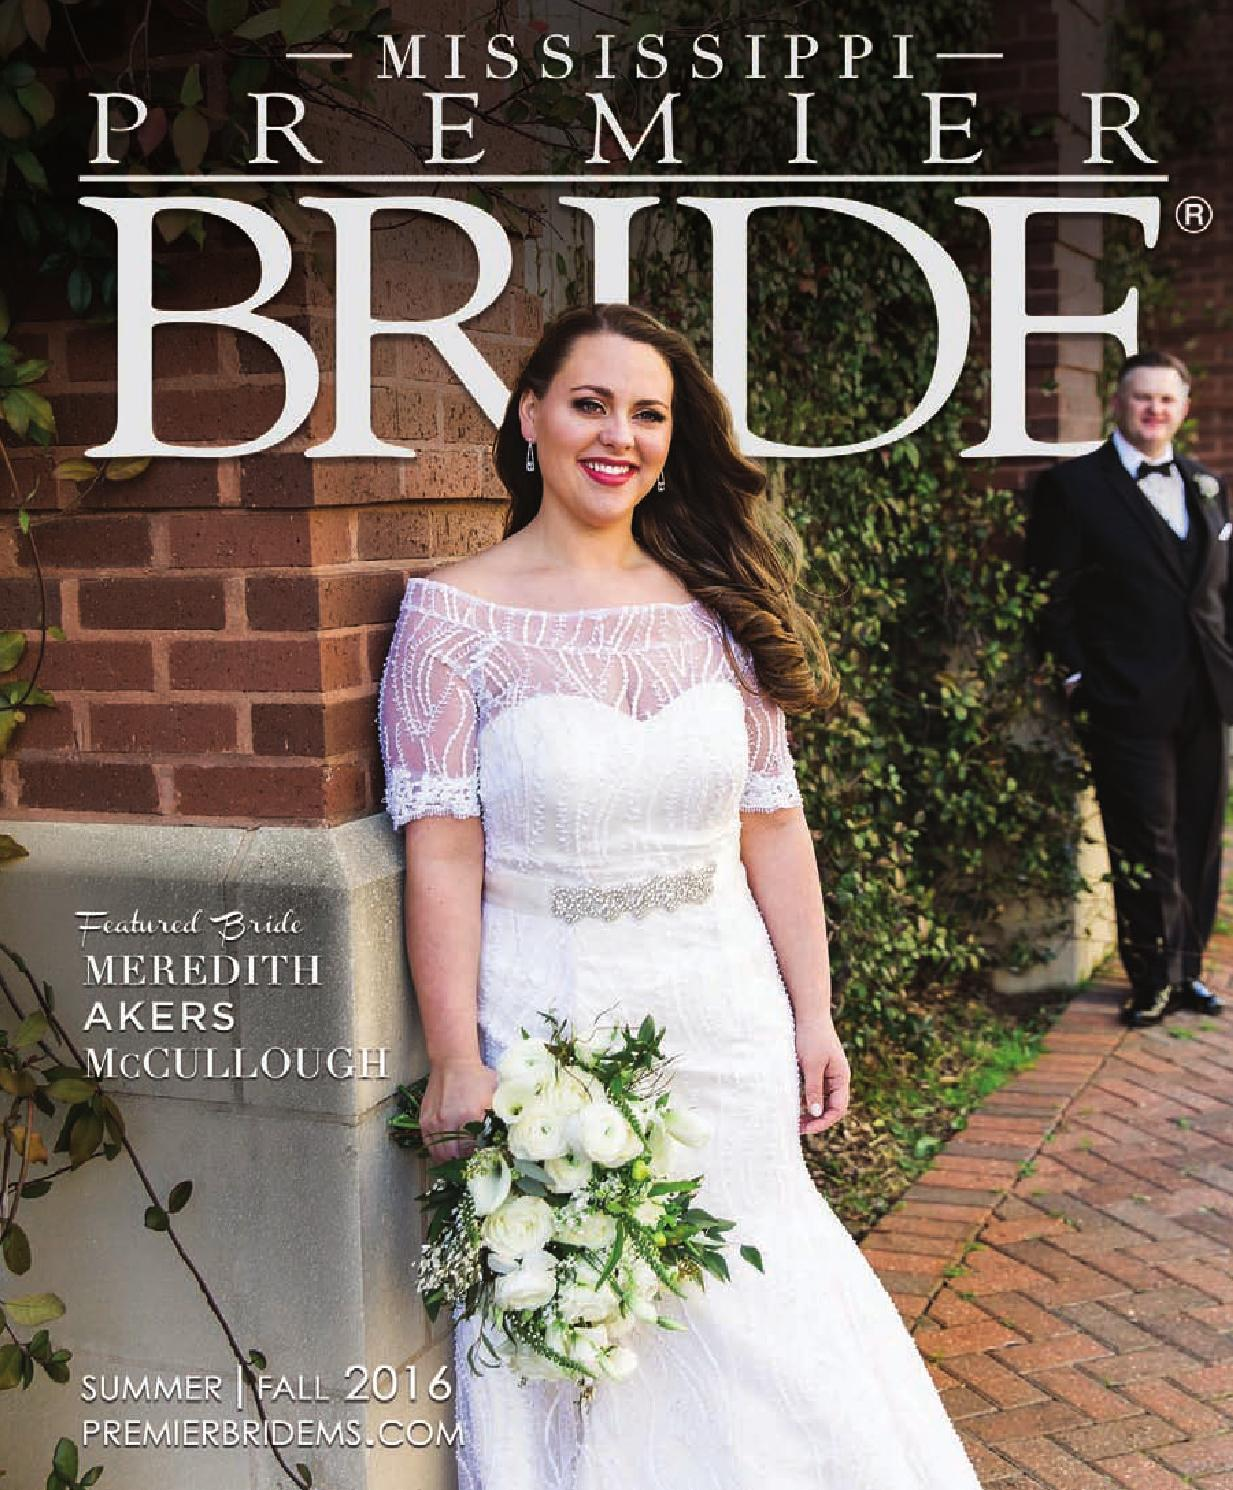 Premier brideof mississippi vol29 by premier bride mississippi issuu ombrellifo Choice Image